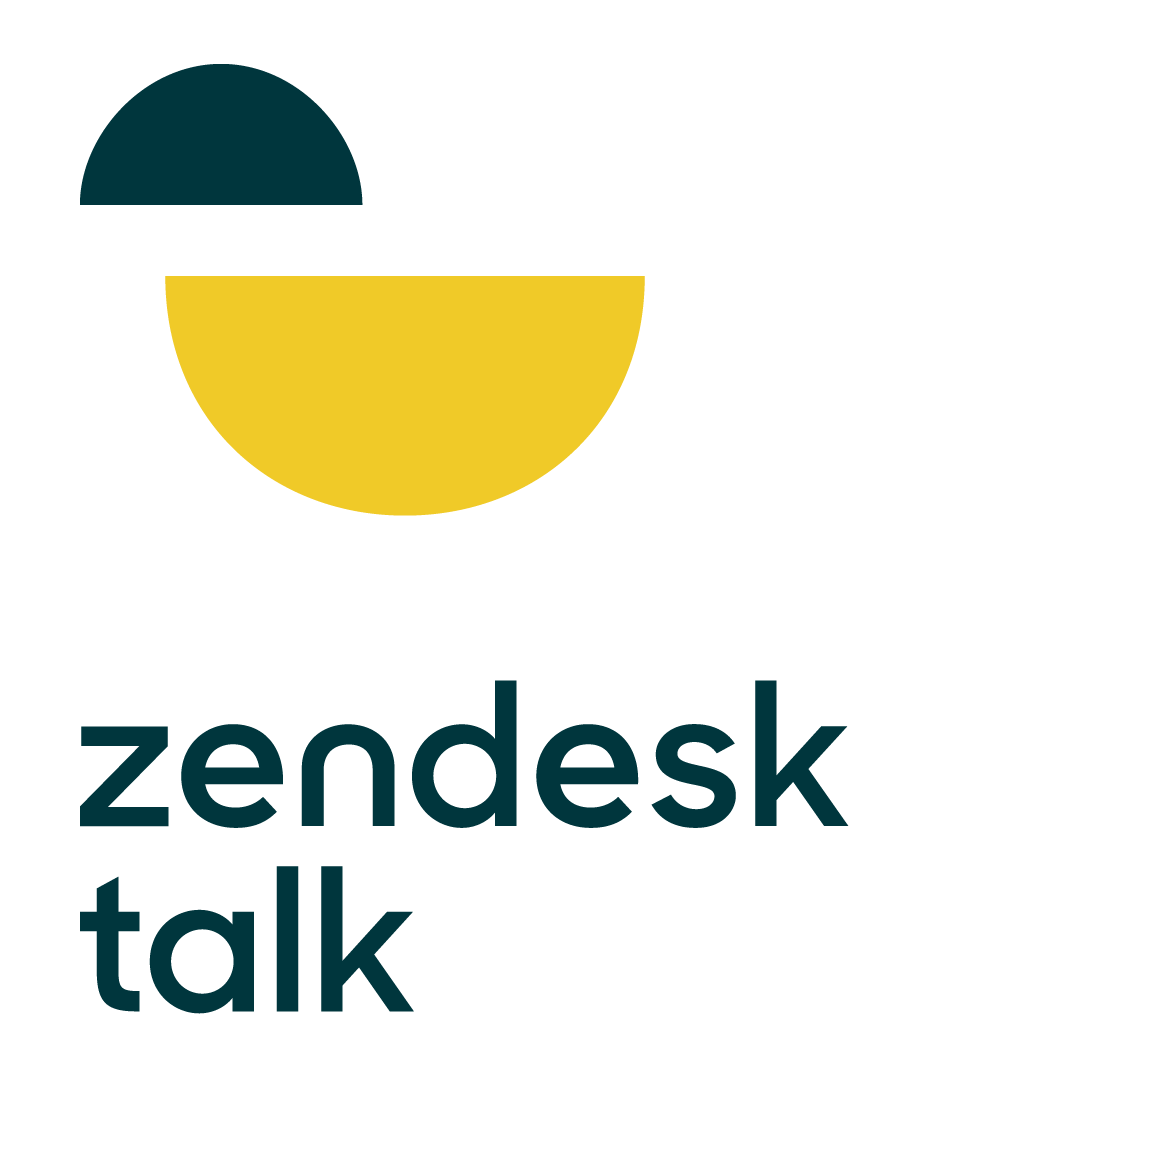 talk_zendesk vertical.png